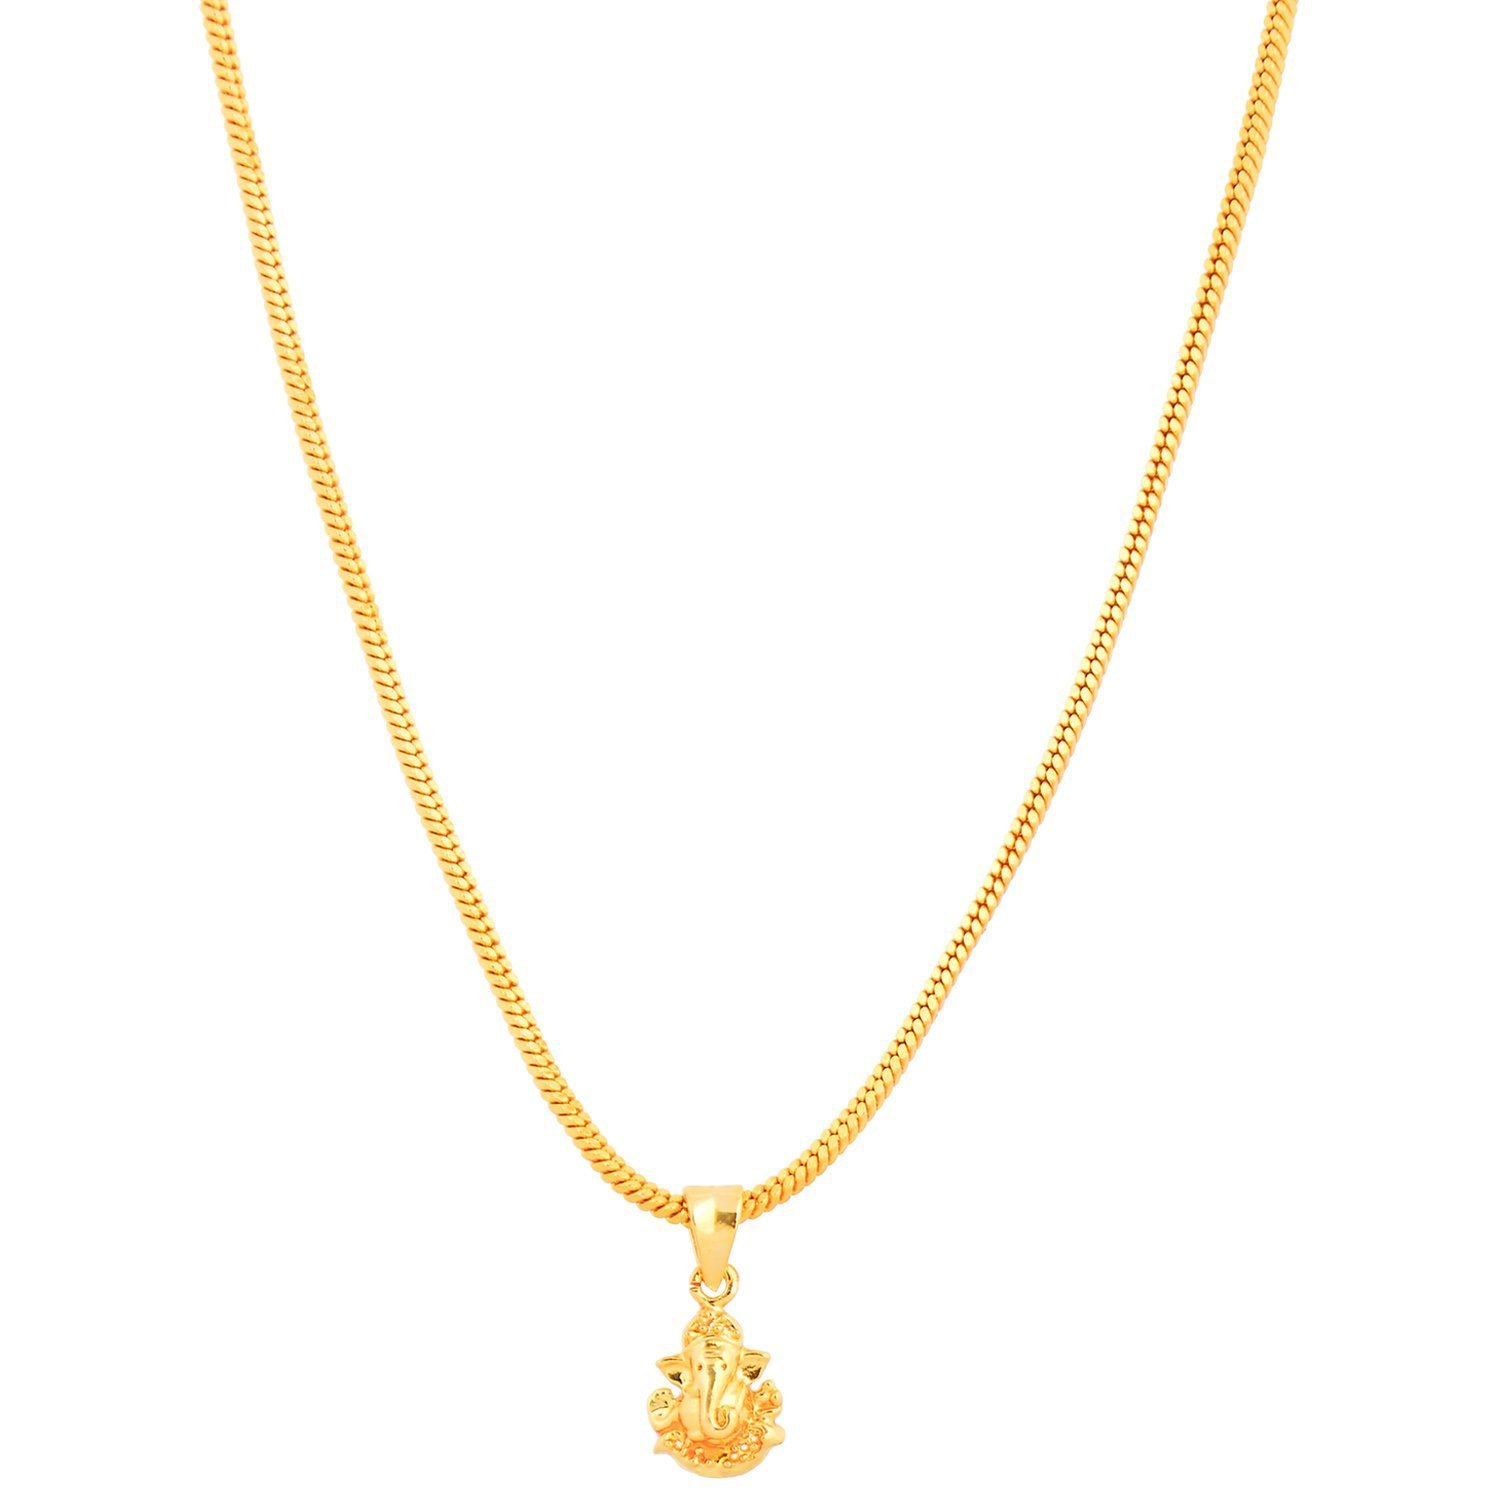 online pendant hk golden amazon at xznpkl men plated india gold jewellery low chain store buy prices handicraft nr for kottage dp in